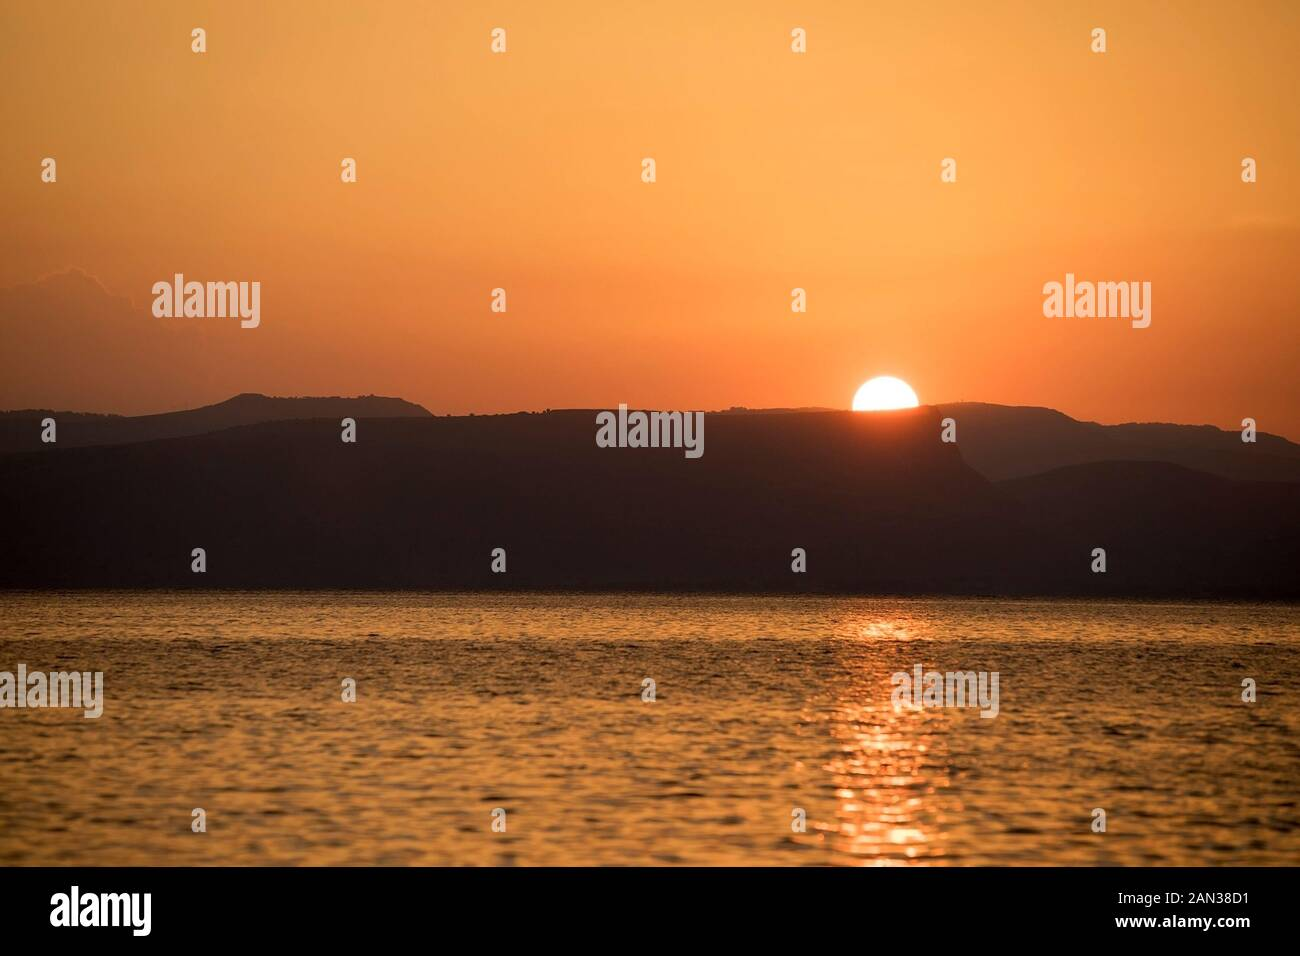 Sun setting over the Sea of Galilee, Israel's largest freshwater lake Stock Photo